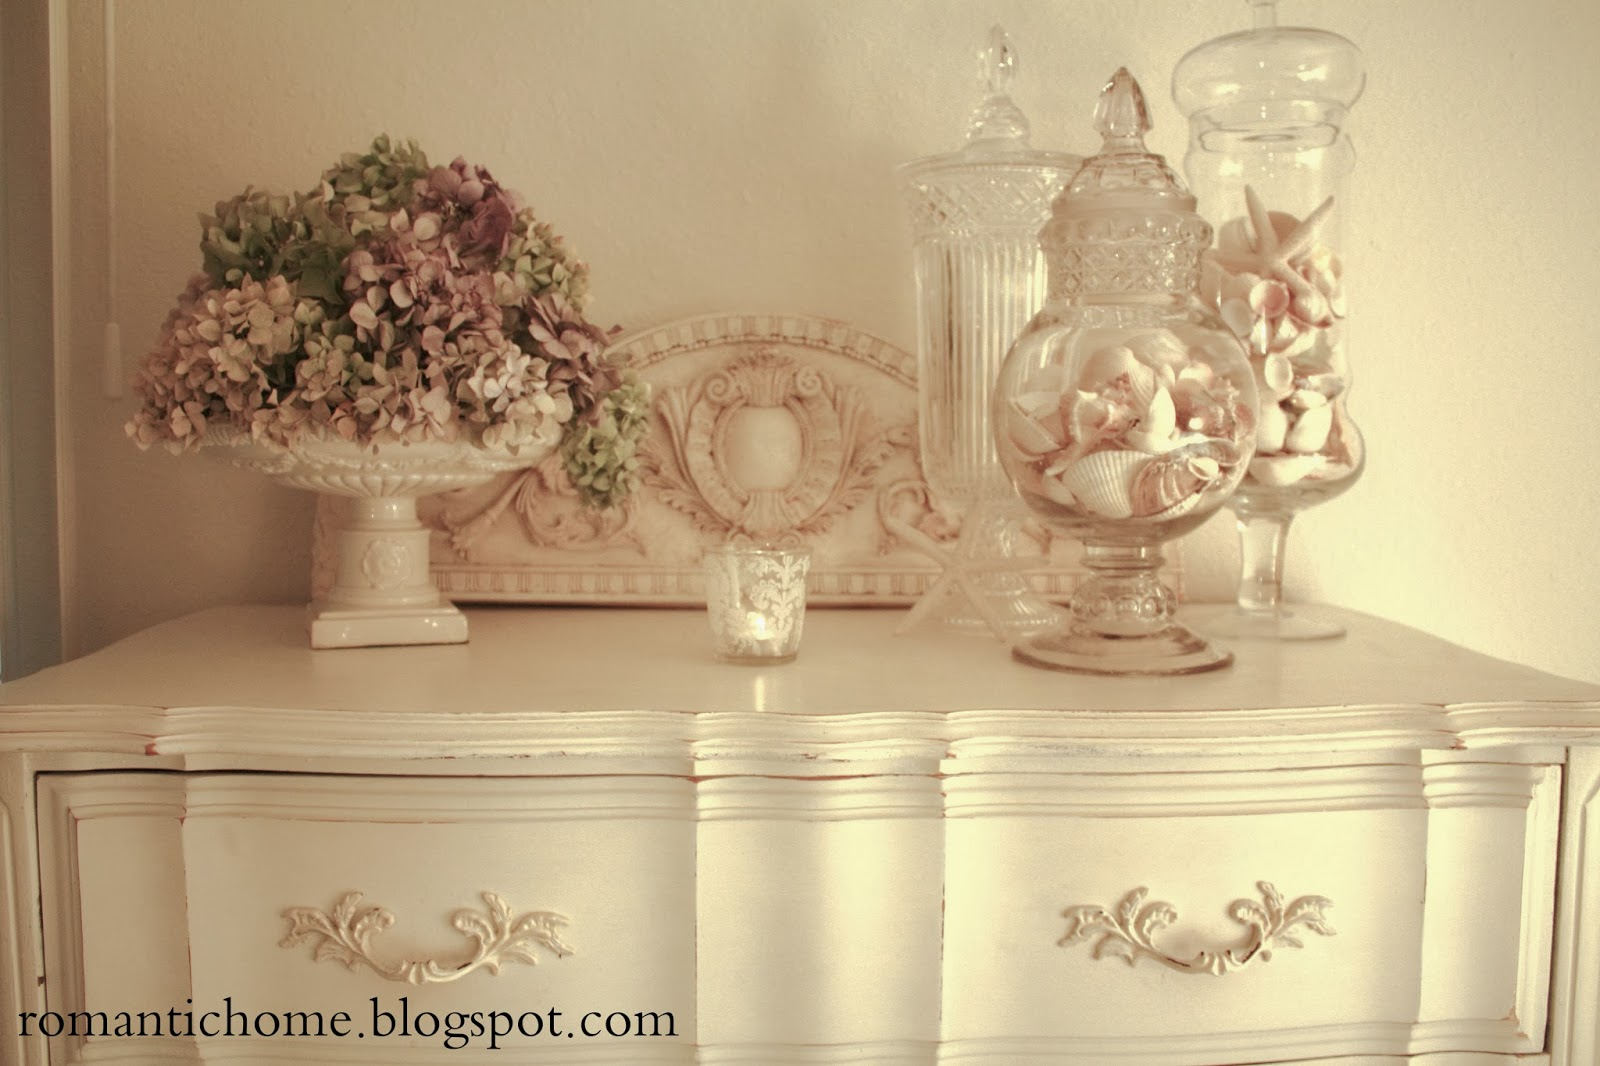 my romantic home still unpacking show and tell friday